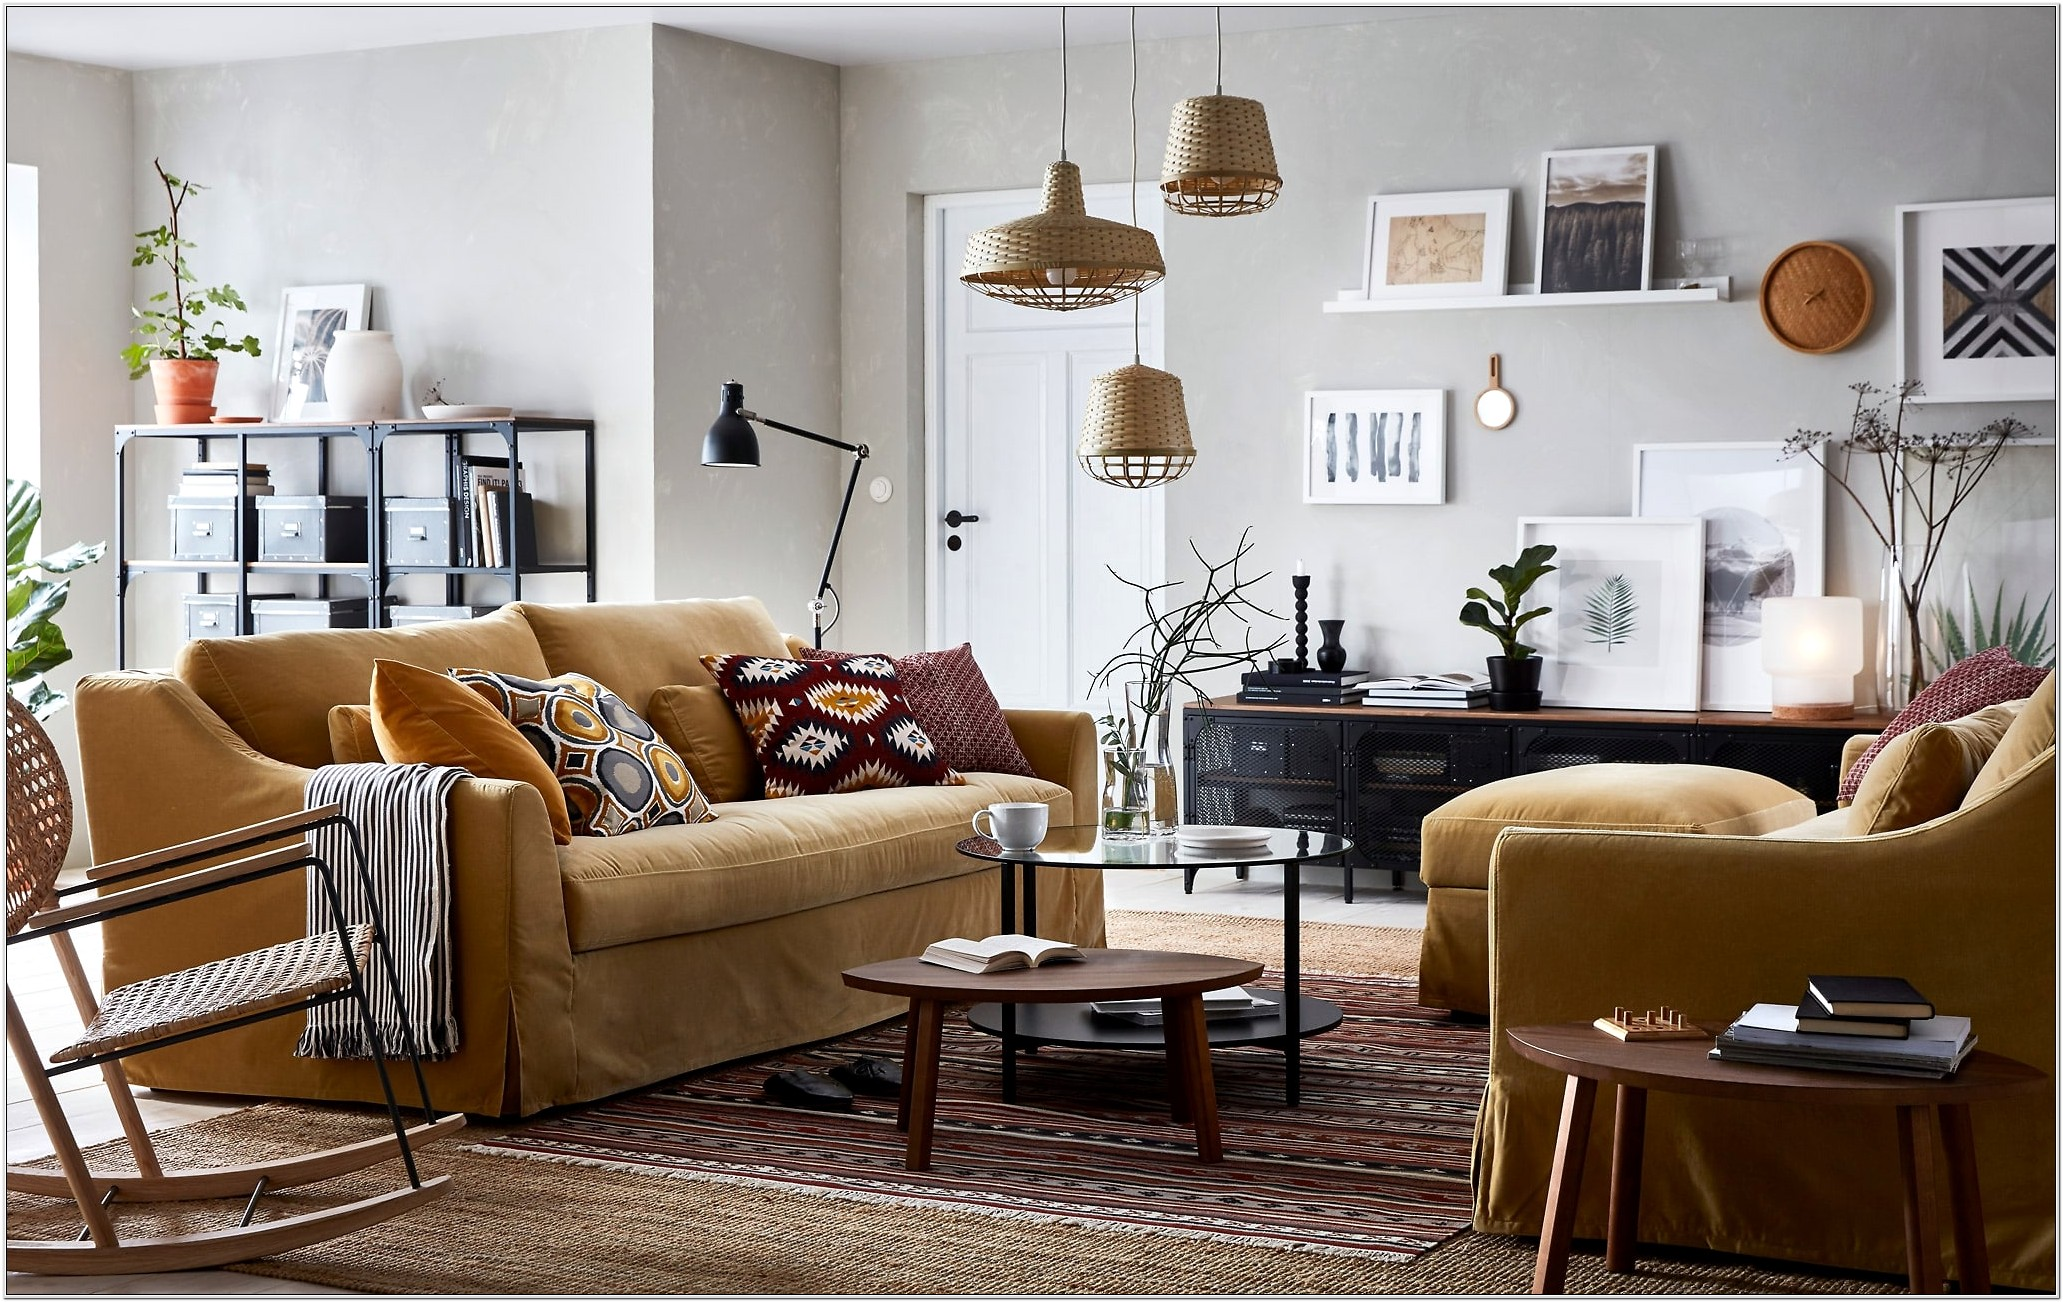 Living Room Ideas With Beige Couch